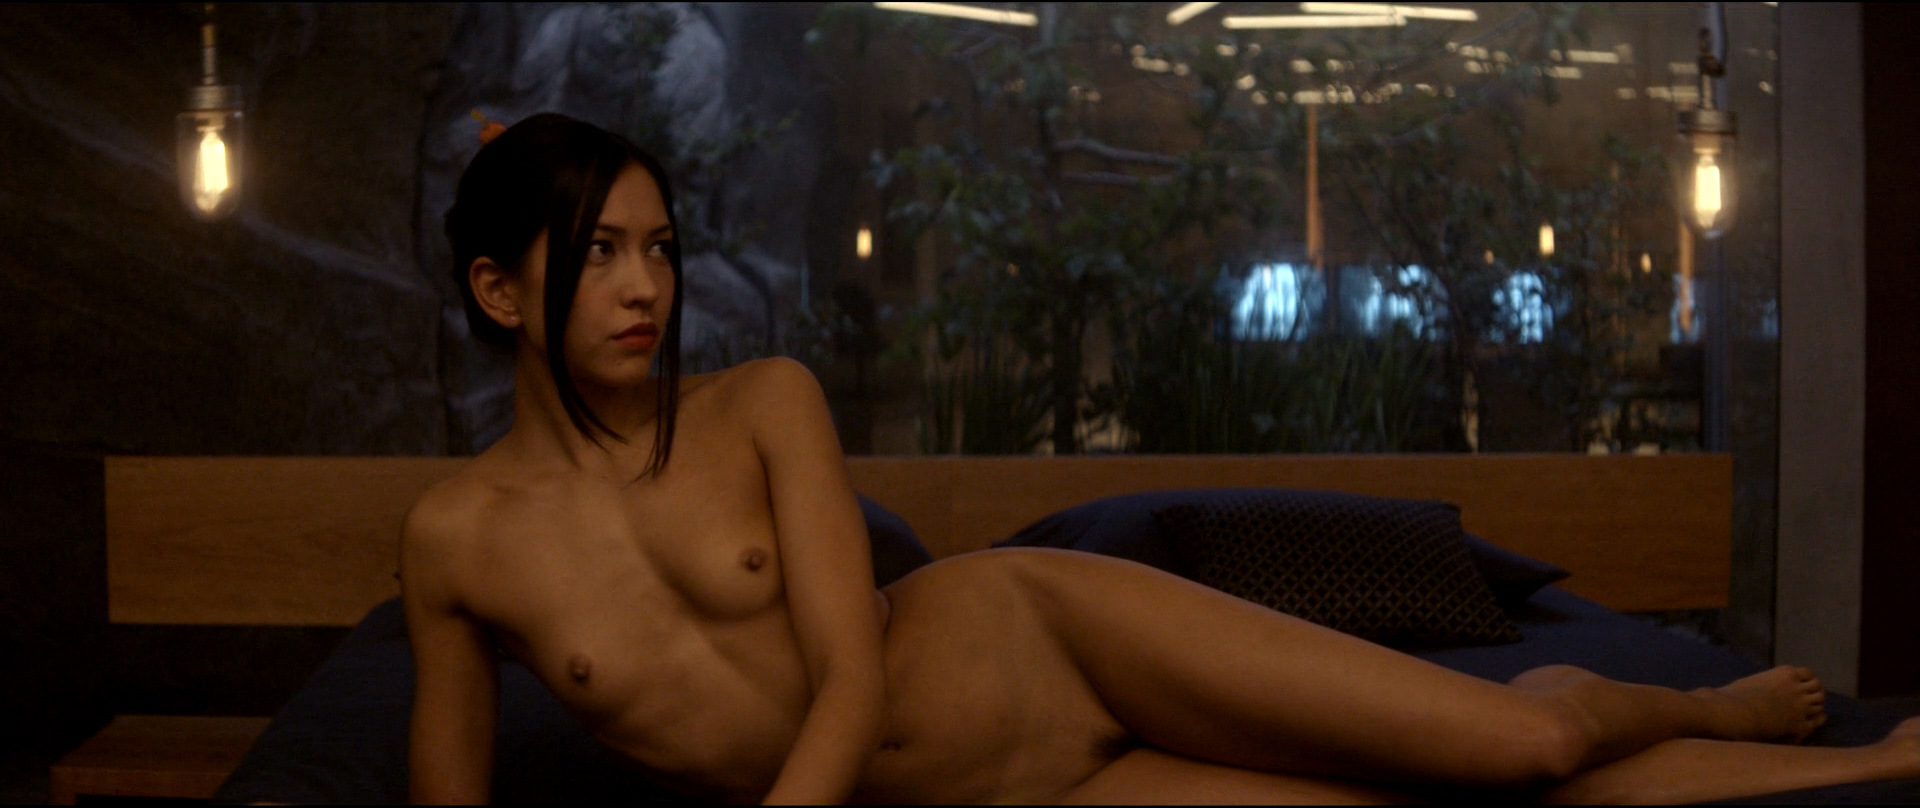 Ex machina nude girls fucks picture